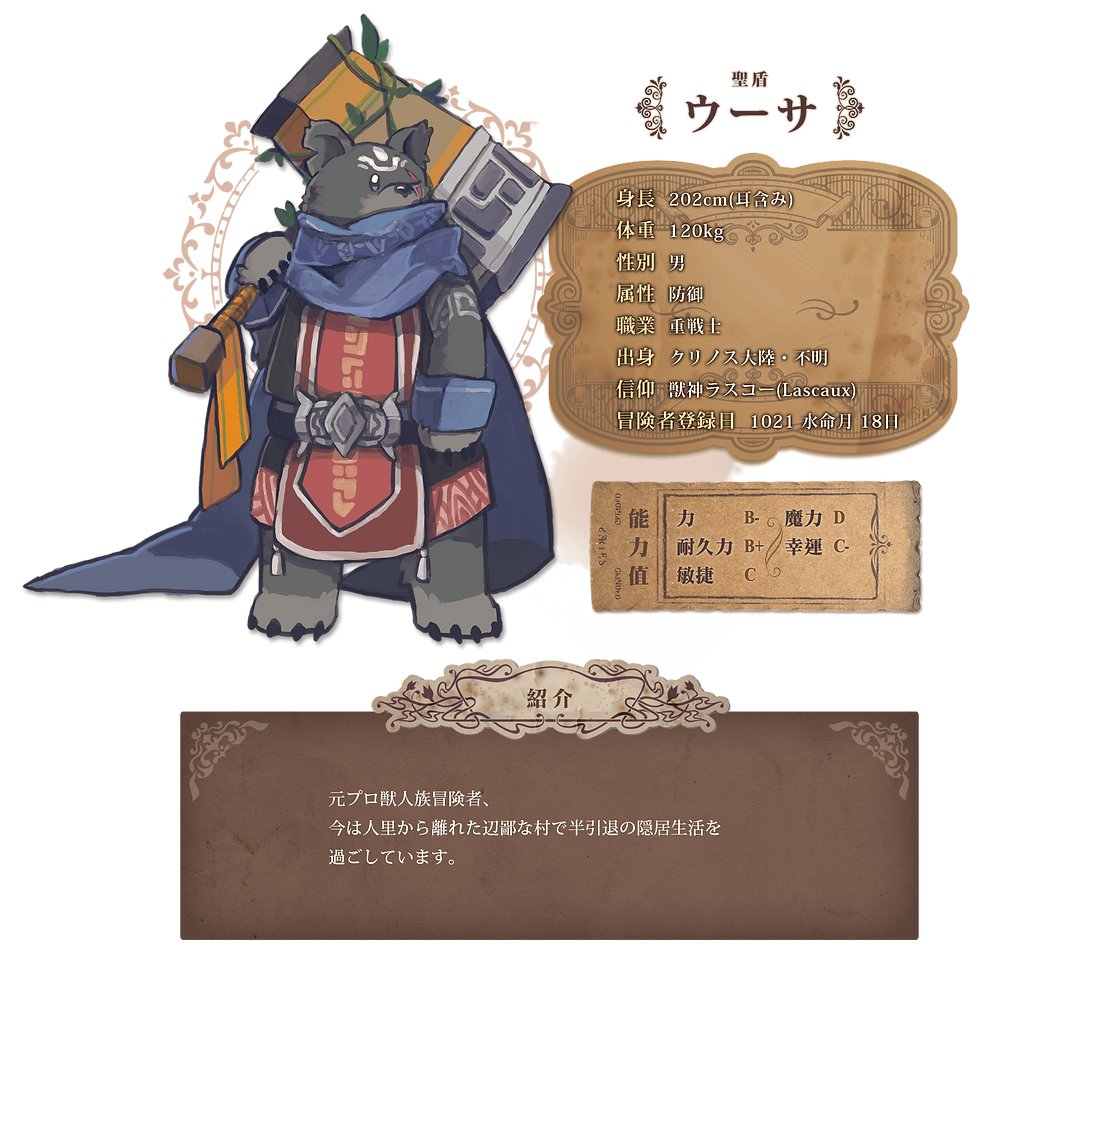 [JP] All character2.png